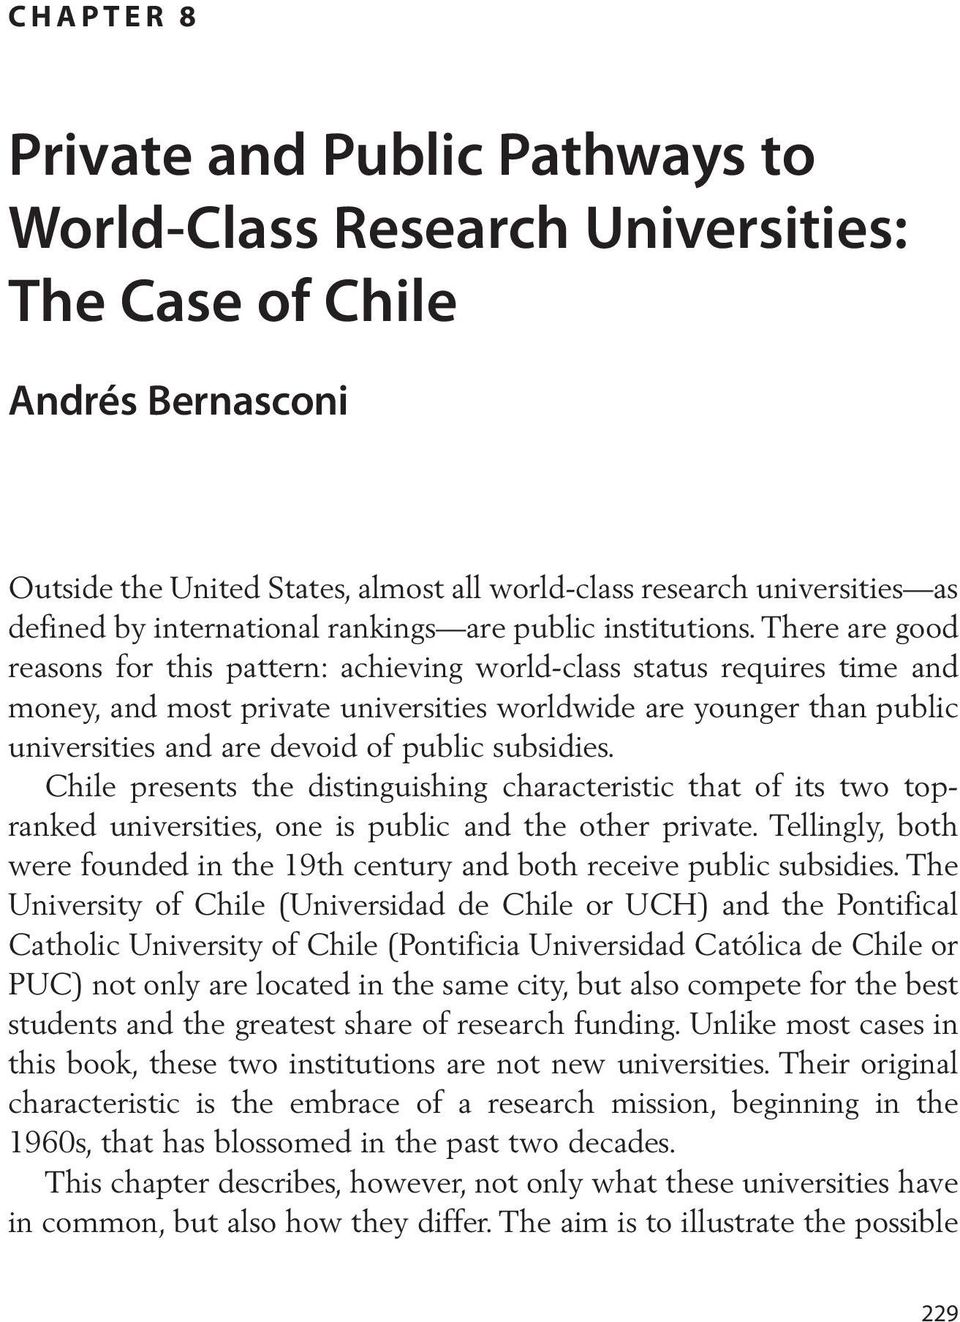 There are good reasons for this pattern: achieving world-class status requires time and money, and most private universities worldwide are younger than public universities and are devoid of public